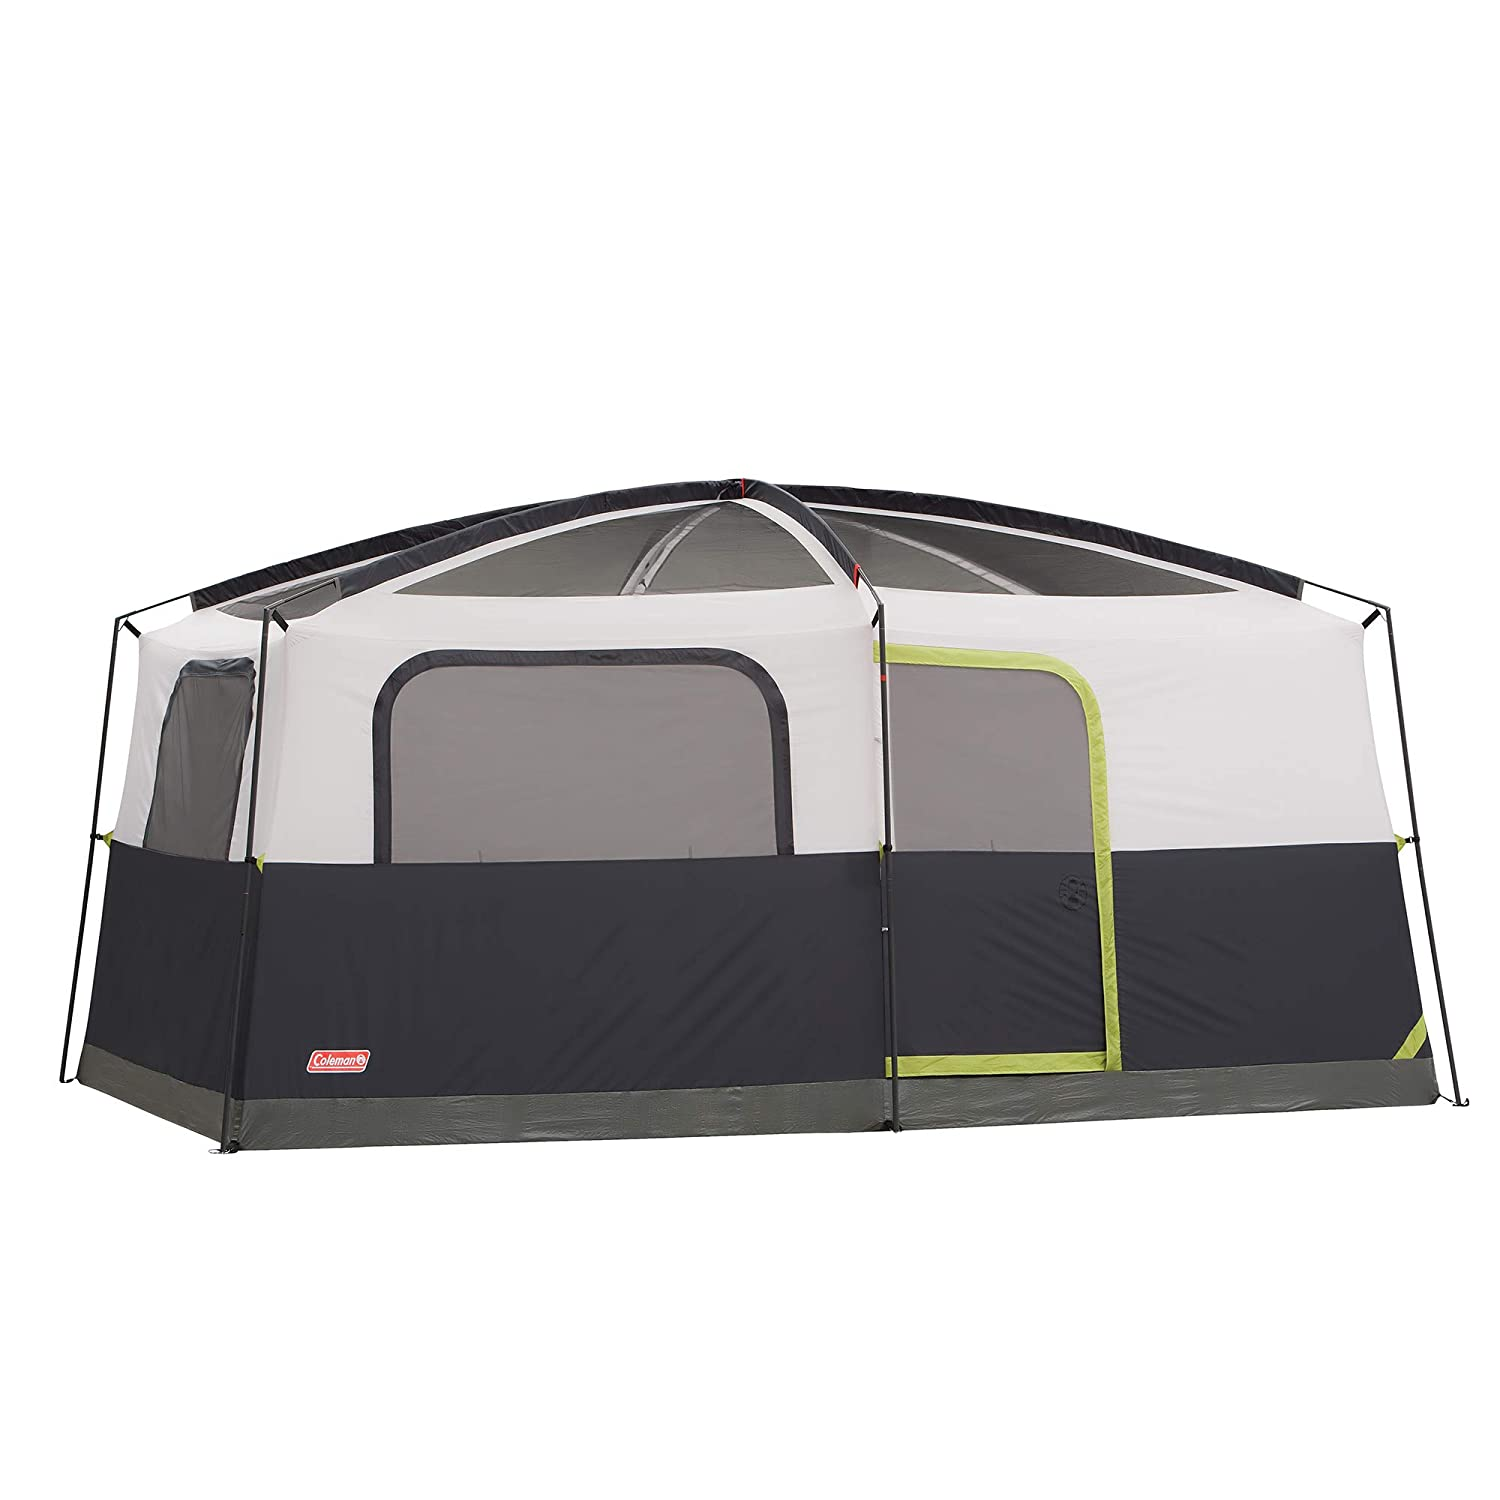 Coleman Prairie Breeze 9-Person Cabin Tent Review